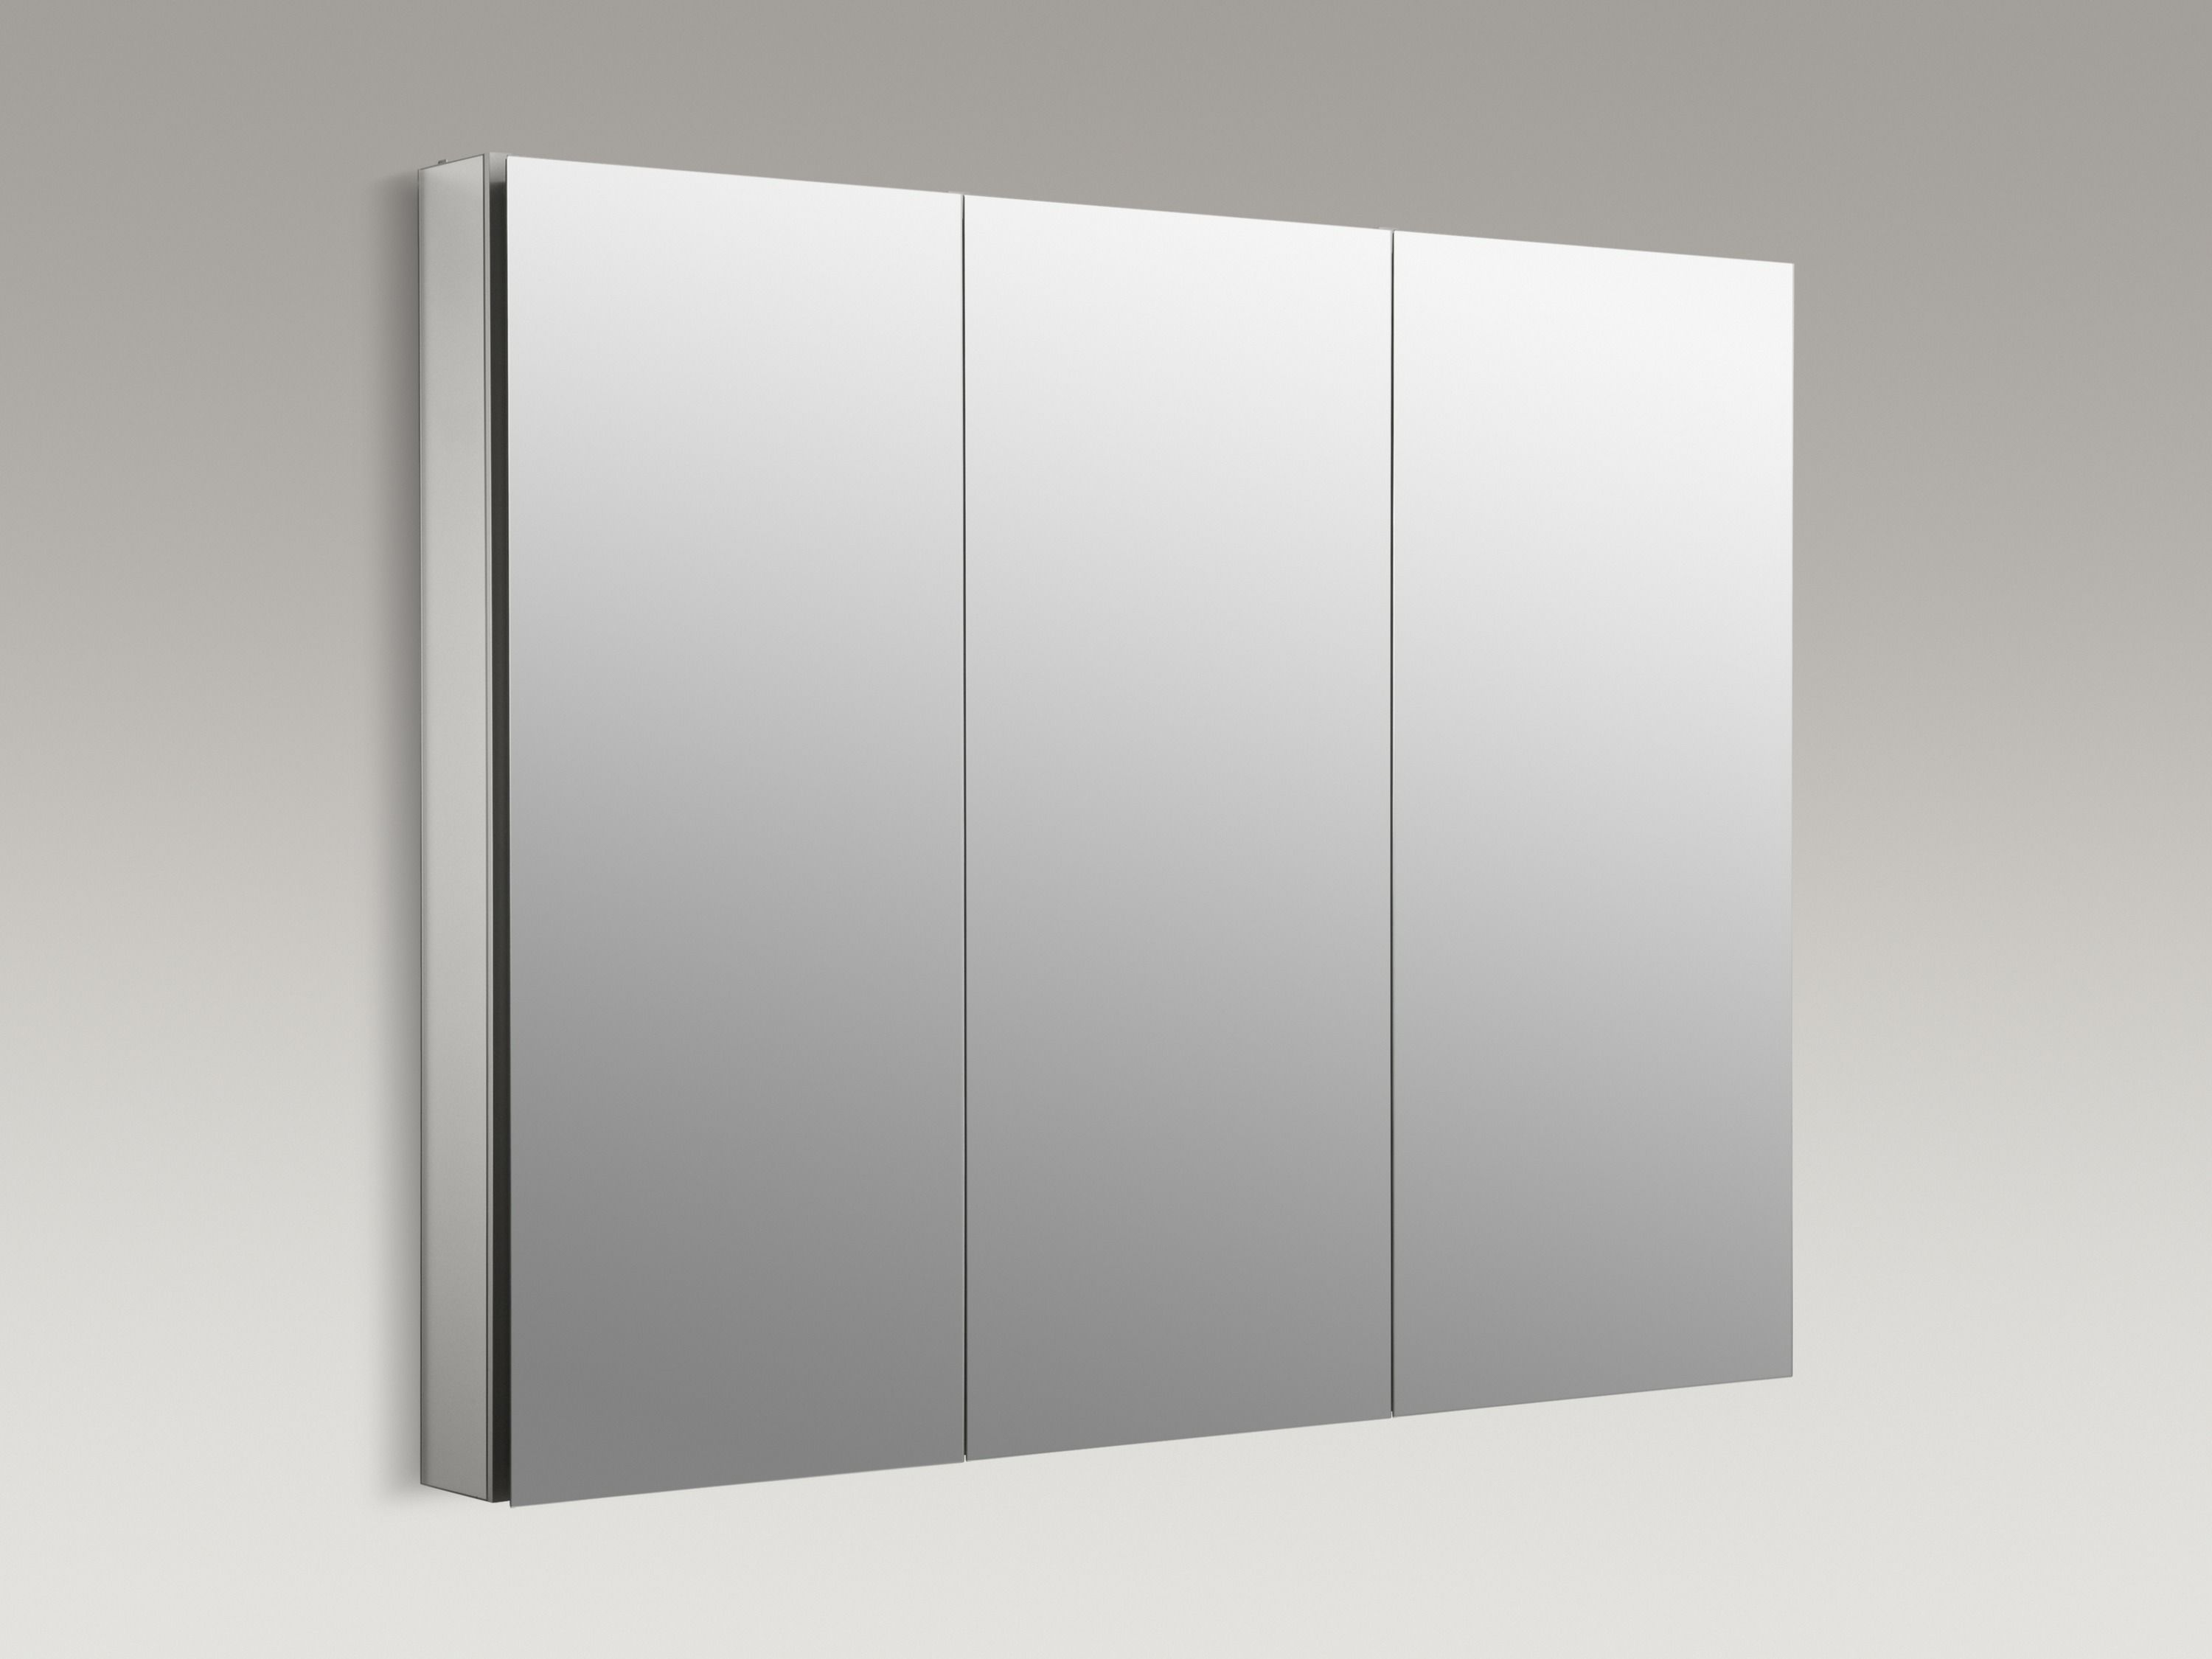 Kohler Catalan45 Satin Anodized Aluminum Catalan 45 Triple Door Frameless Medicine Cabinet Package With Plain Mirror And Ganging Hardware Included